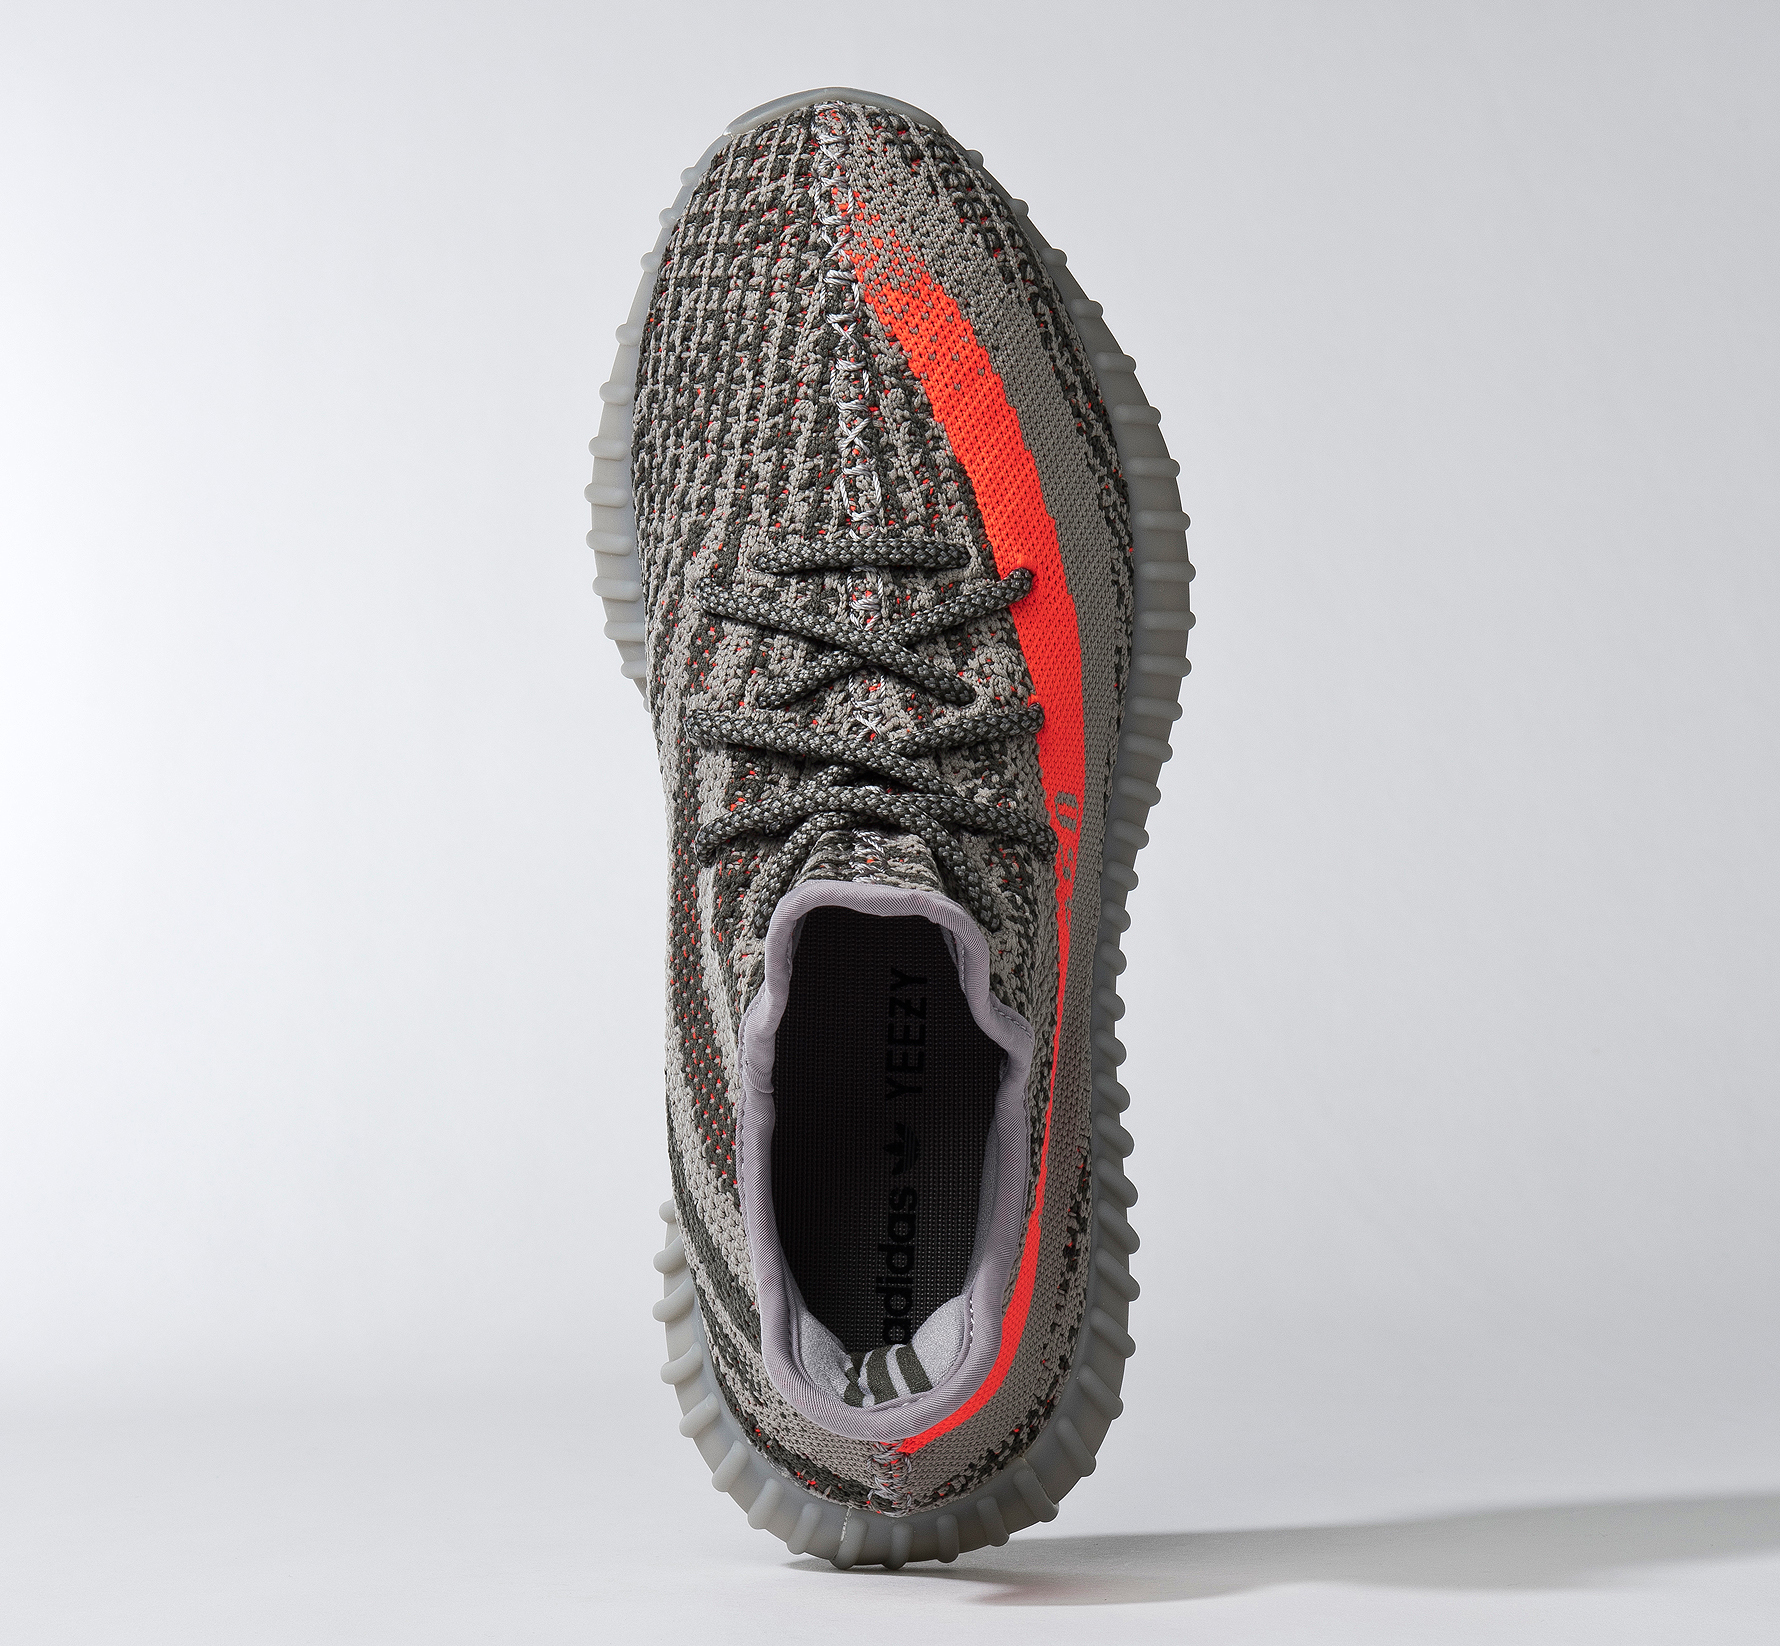 Adidas Yeezy 550 Boost SPLY 350 'Gray Orange'